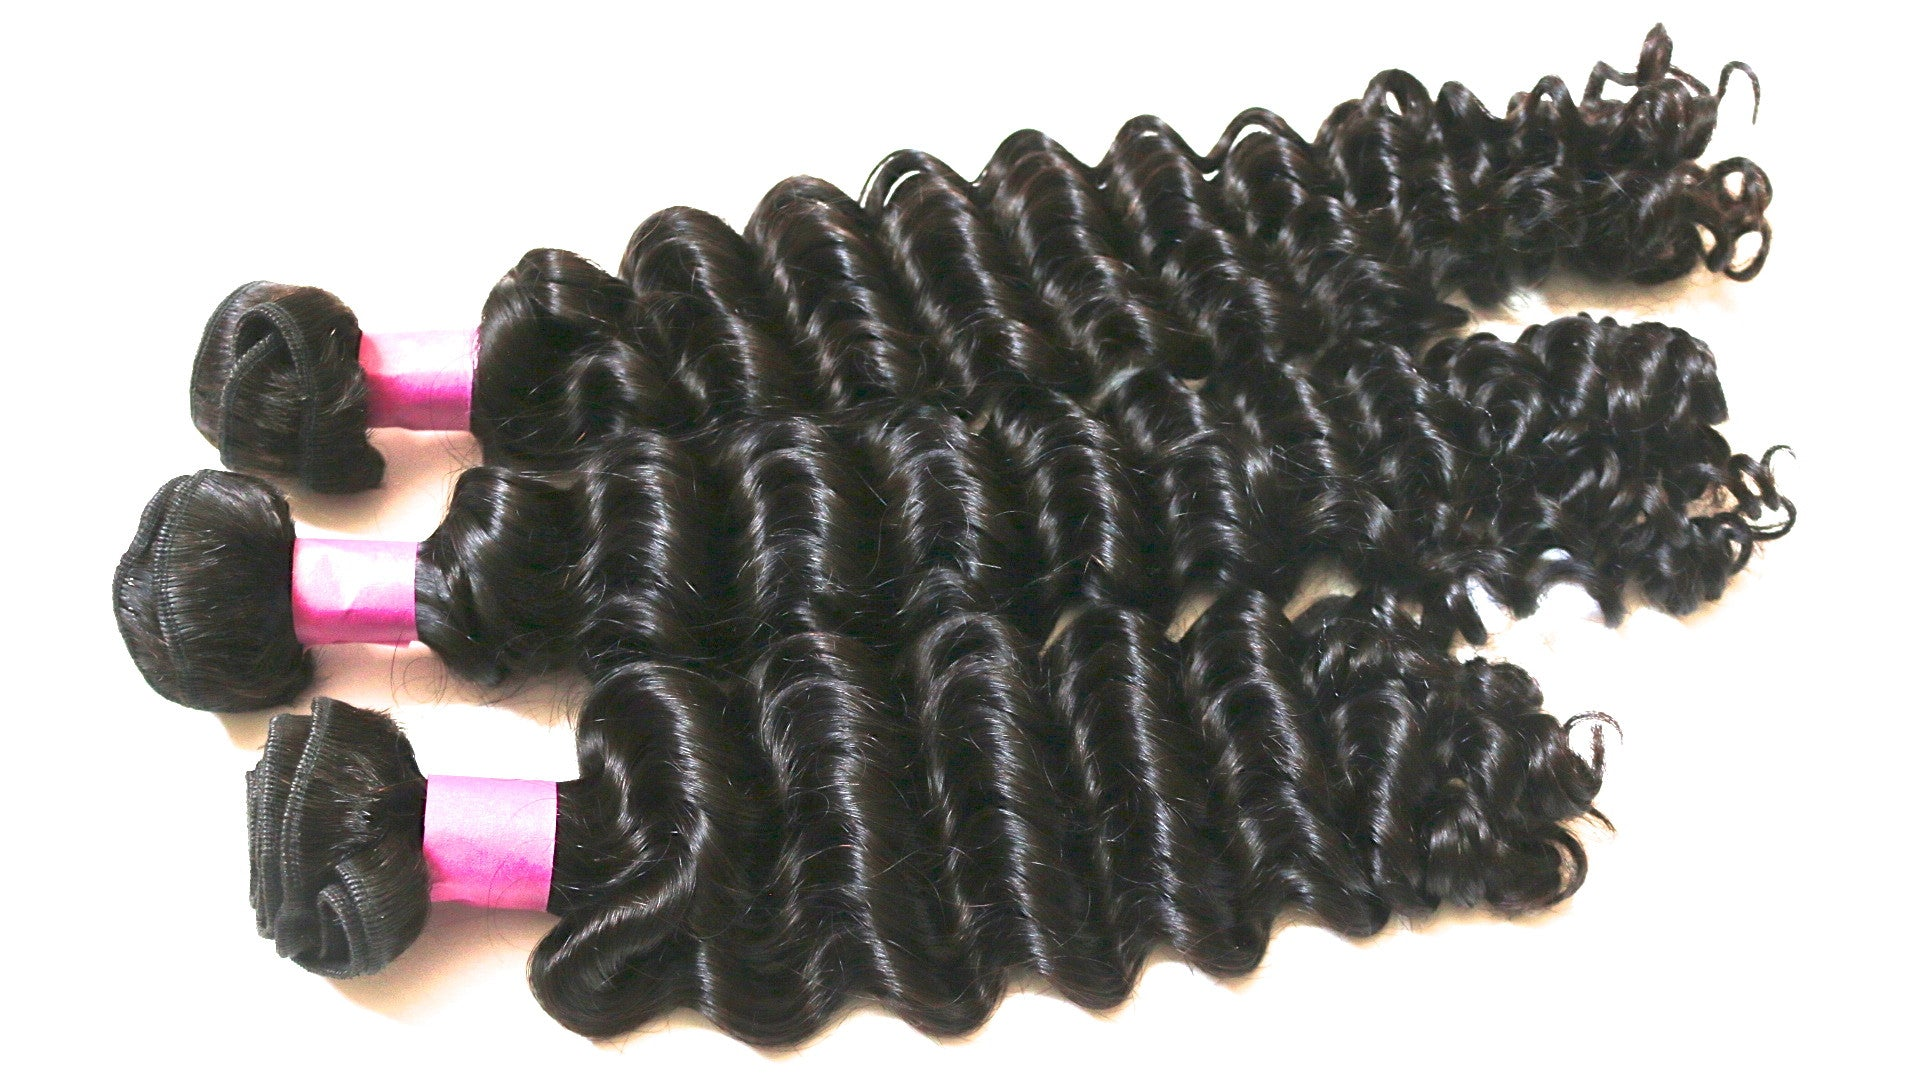 RADIANCE BRAZILIAN DEEP WAVE BUNDLE DEAL! CHRISTMAS SALE!